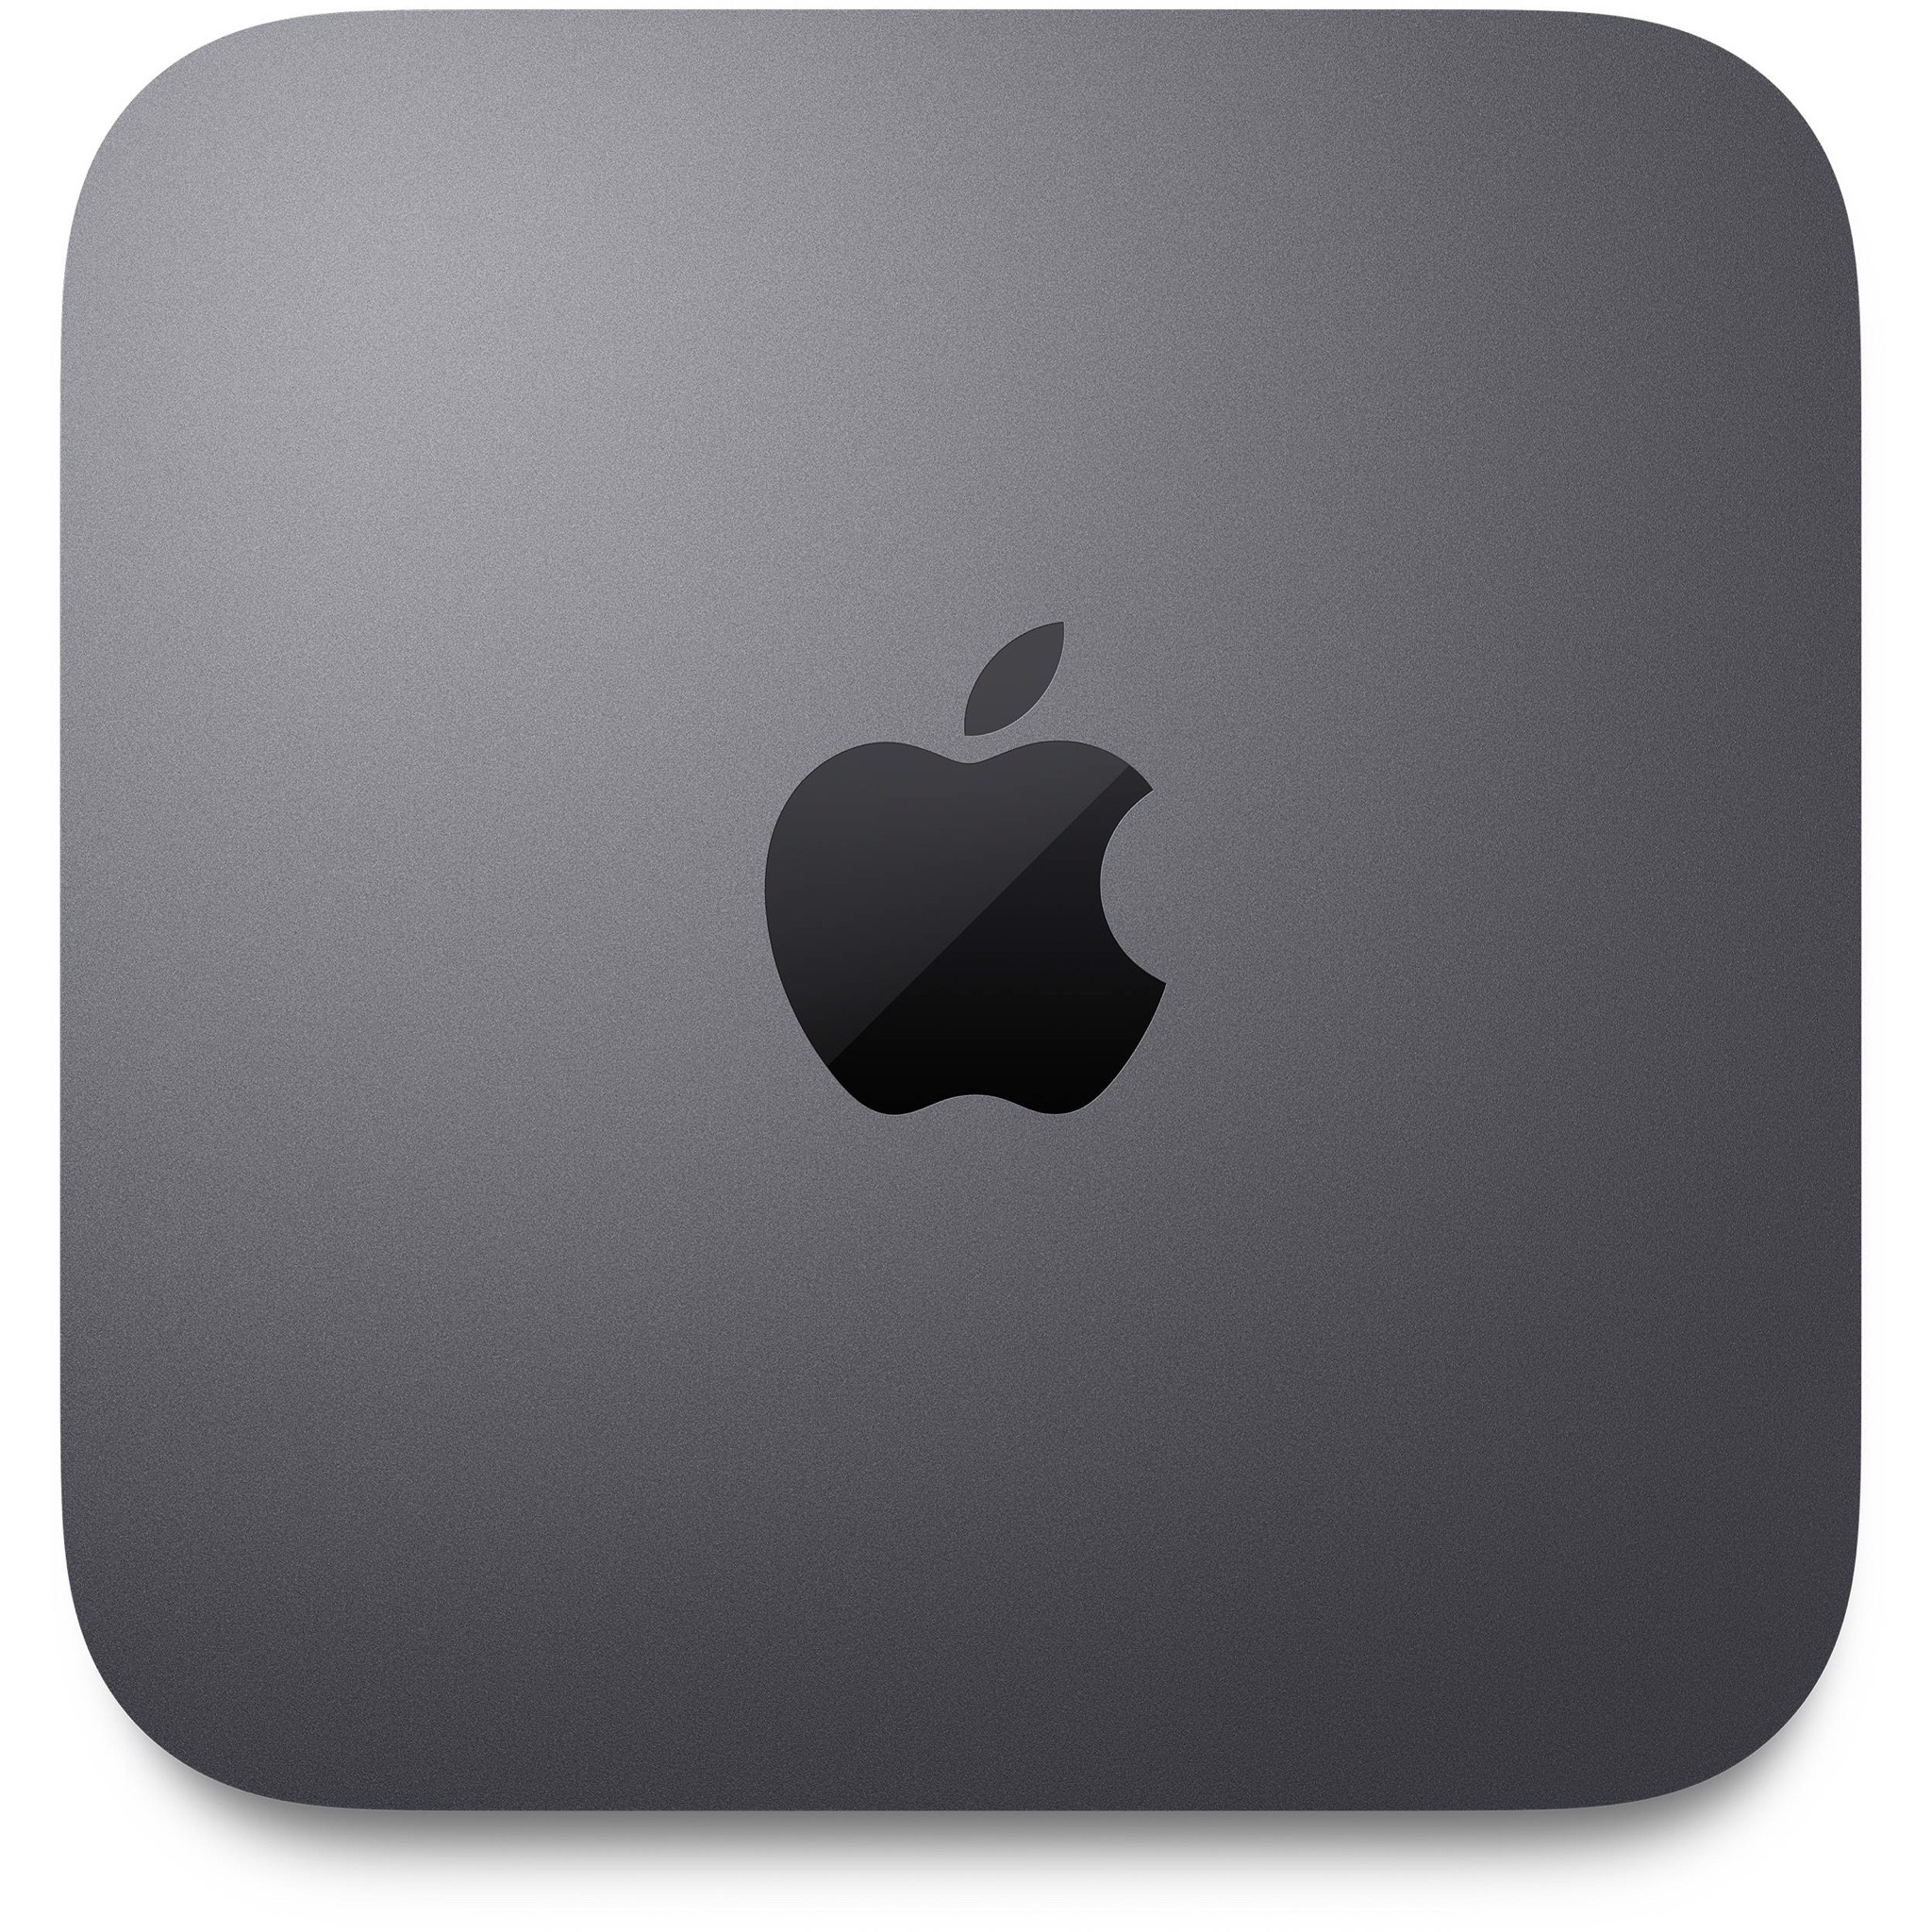 Mac Mini 2020 - Core i3 3.6GHz/ 8GB/256GB SSD - Model: MXNF2